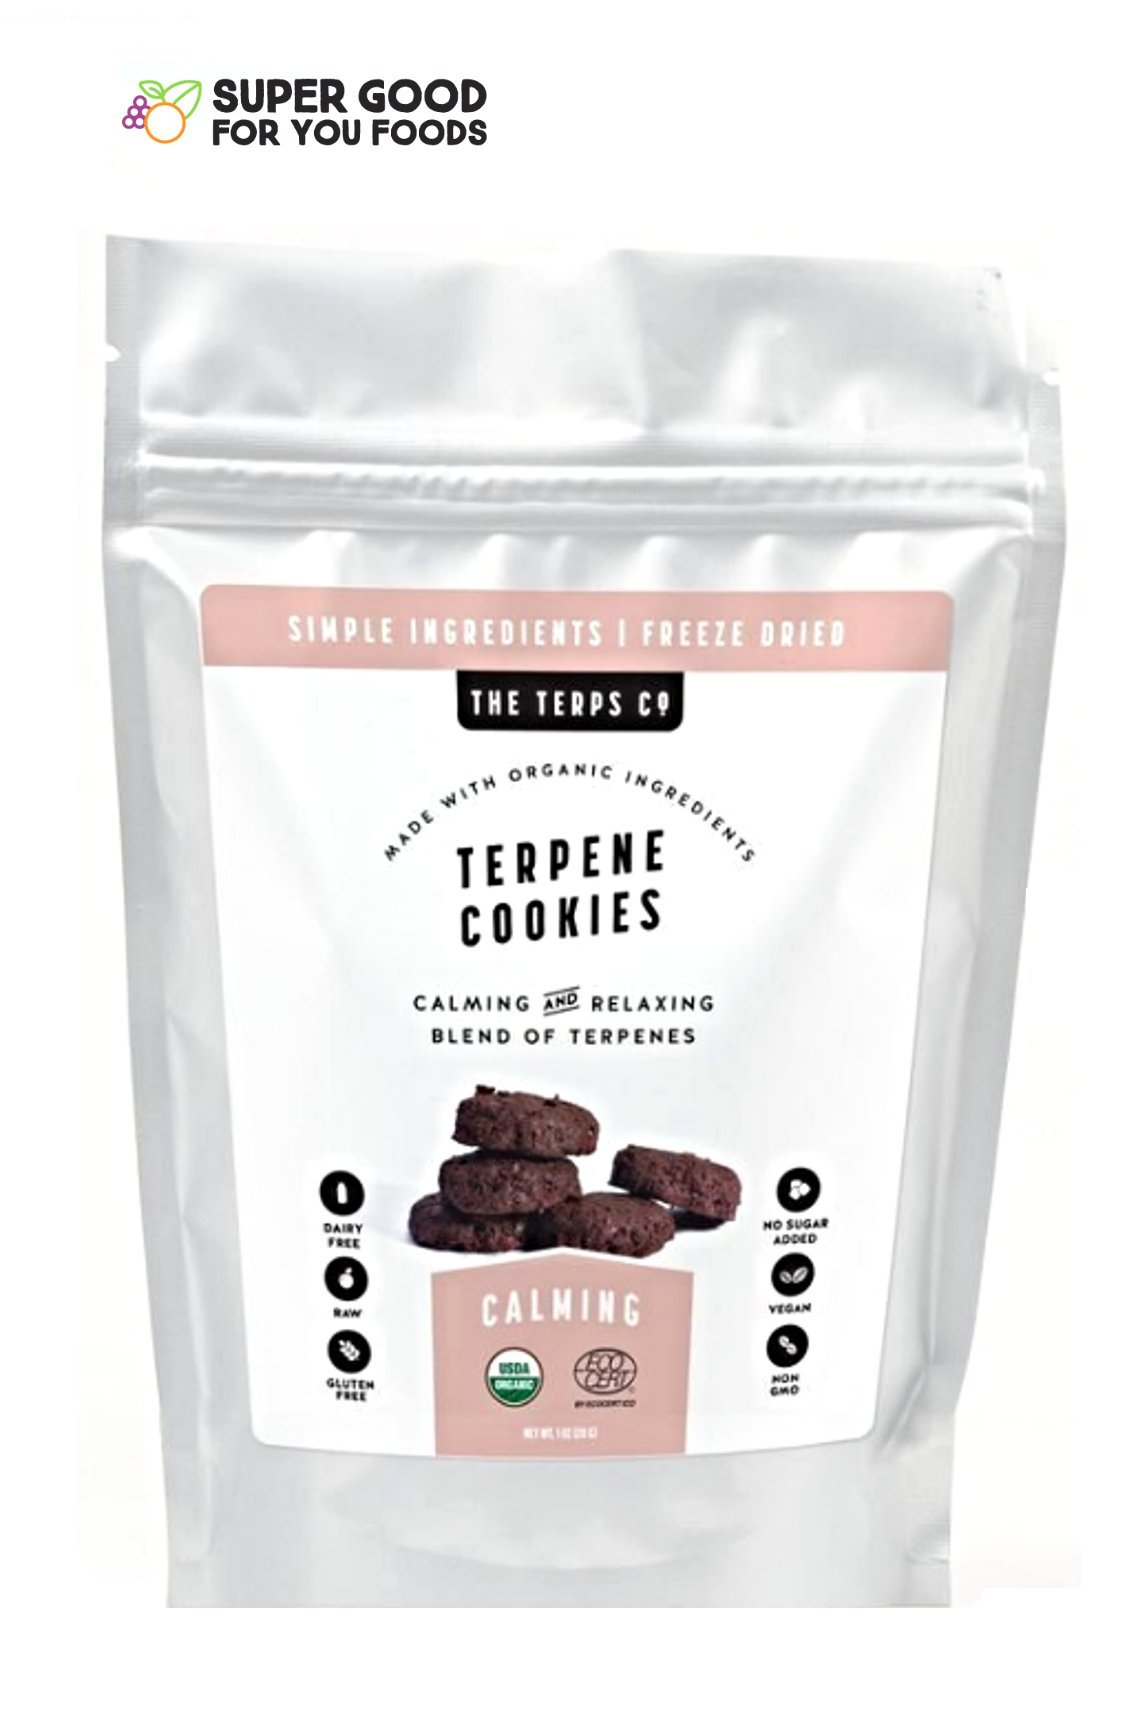 Super Good For You Foods, USDA Organic Freeze Dried Terpene Cookies, Gluten-Free, Non-GMO + Vegan, 1 Ounce Bag by Super Good For You Foods